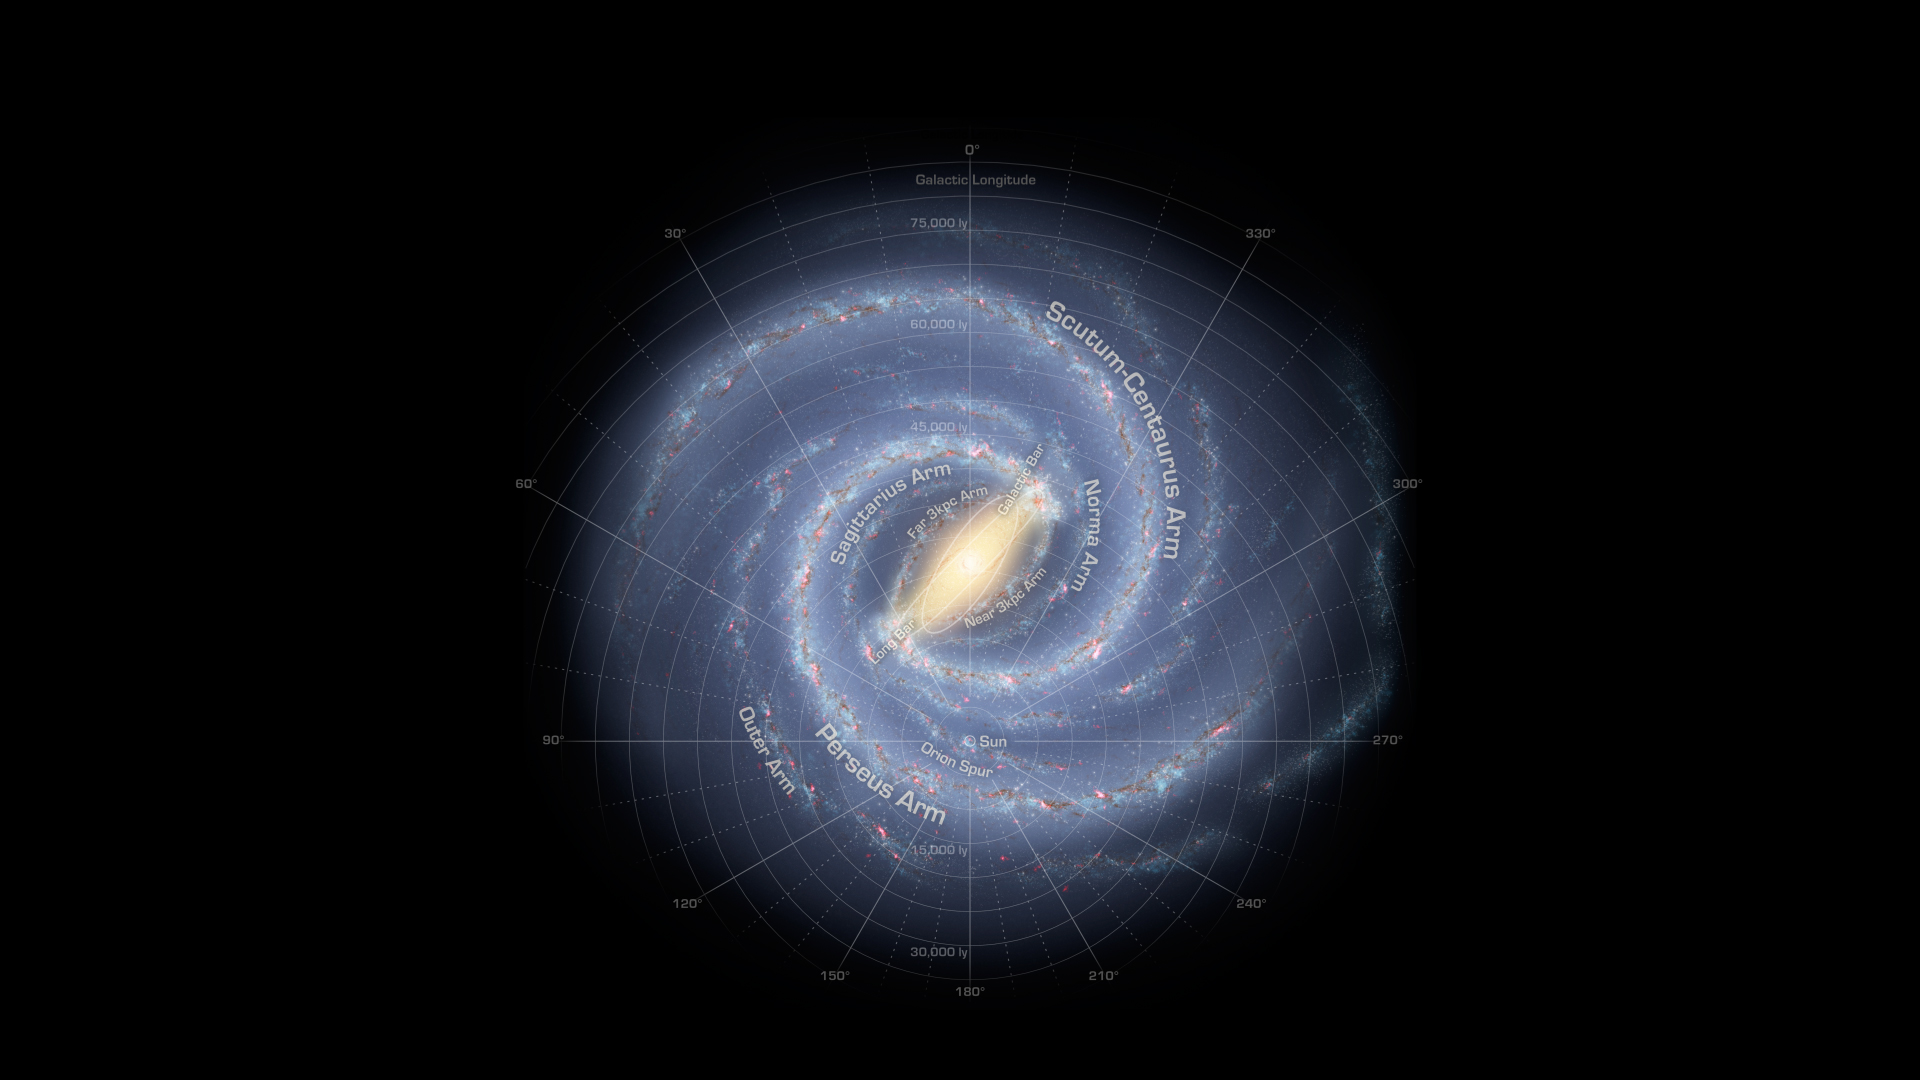 Milky Way Illustration with Arms